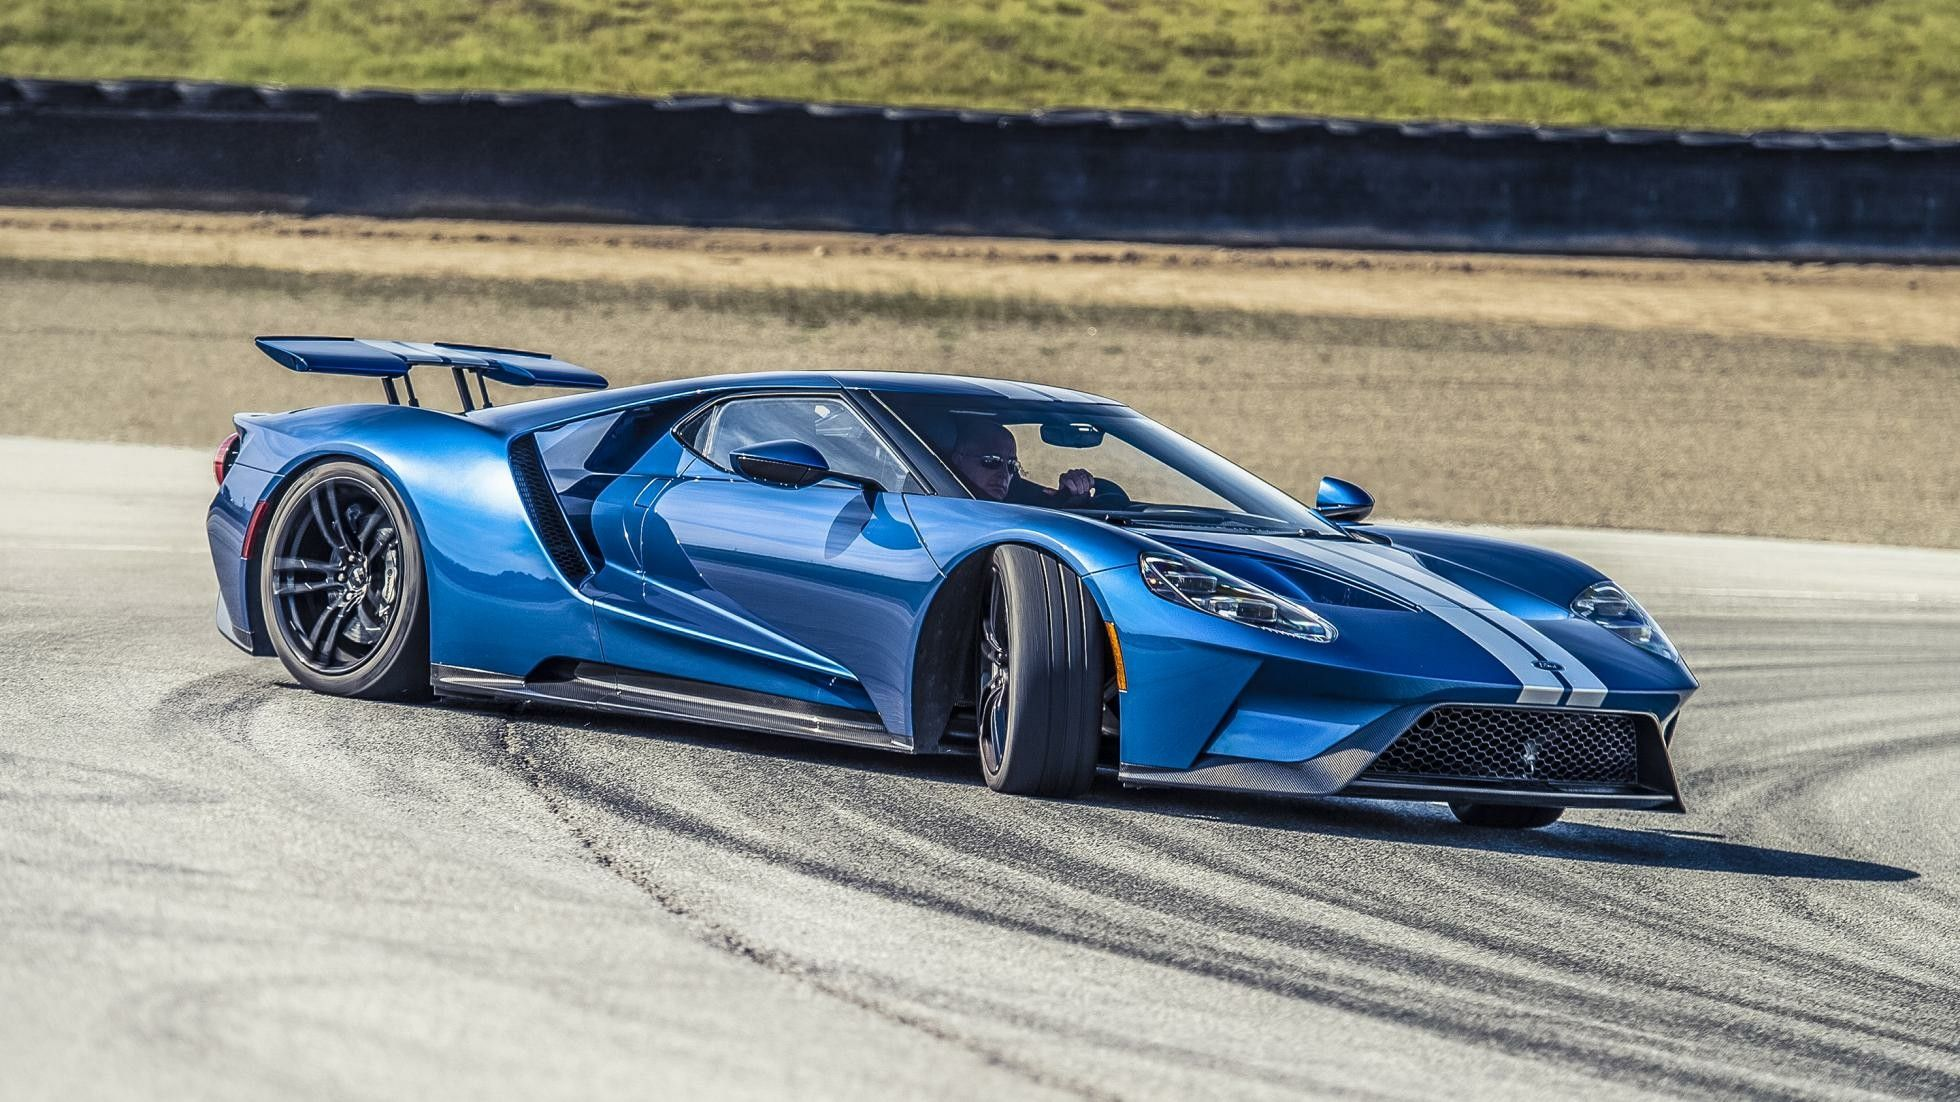 Ford Gt Tearing Up The Track Racing Speed Power Performance